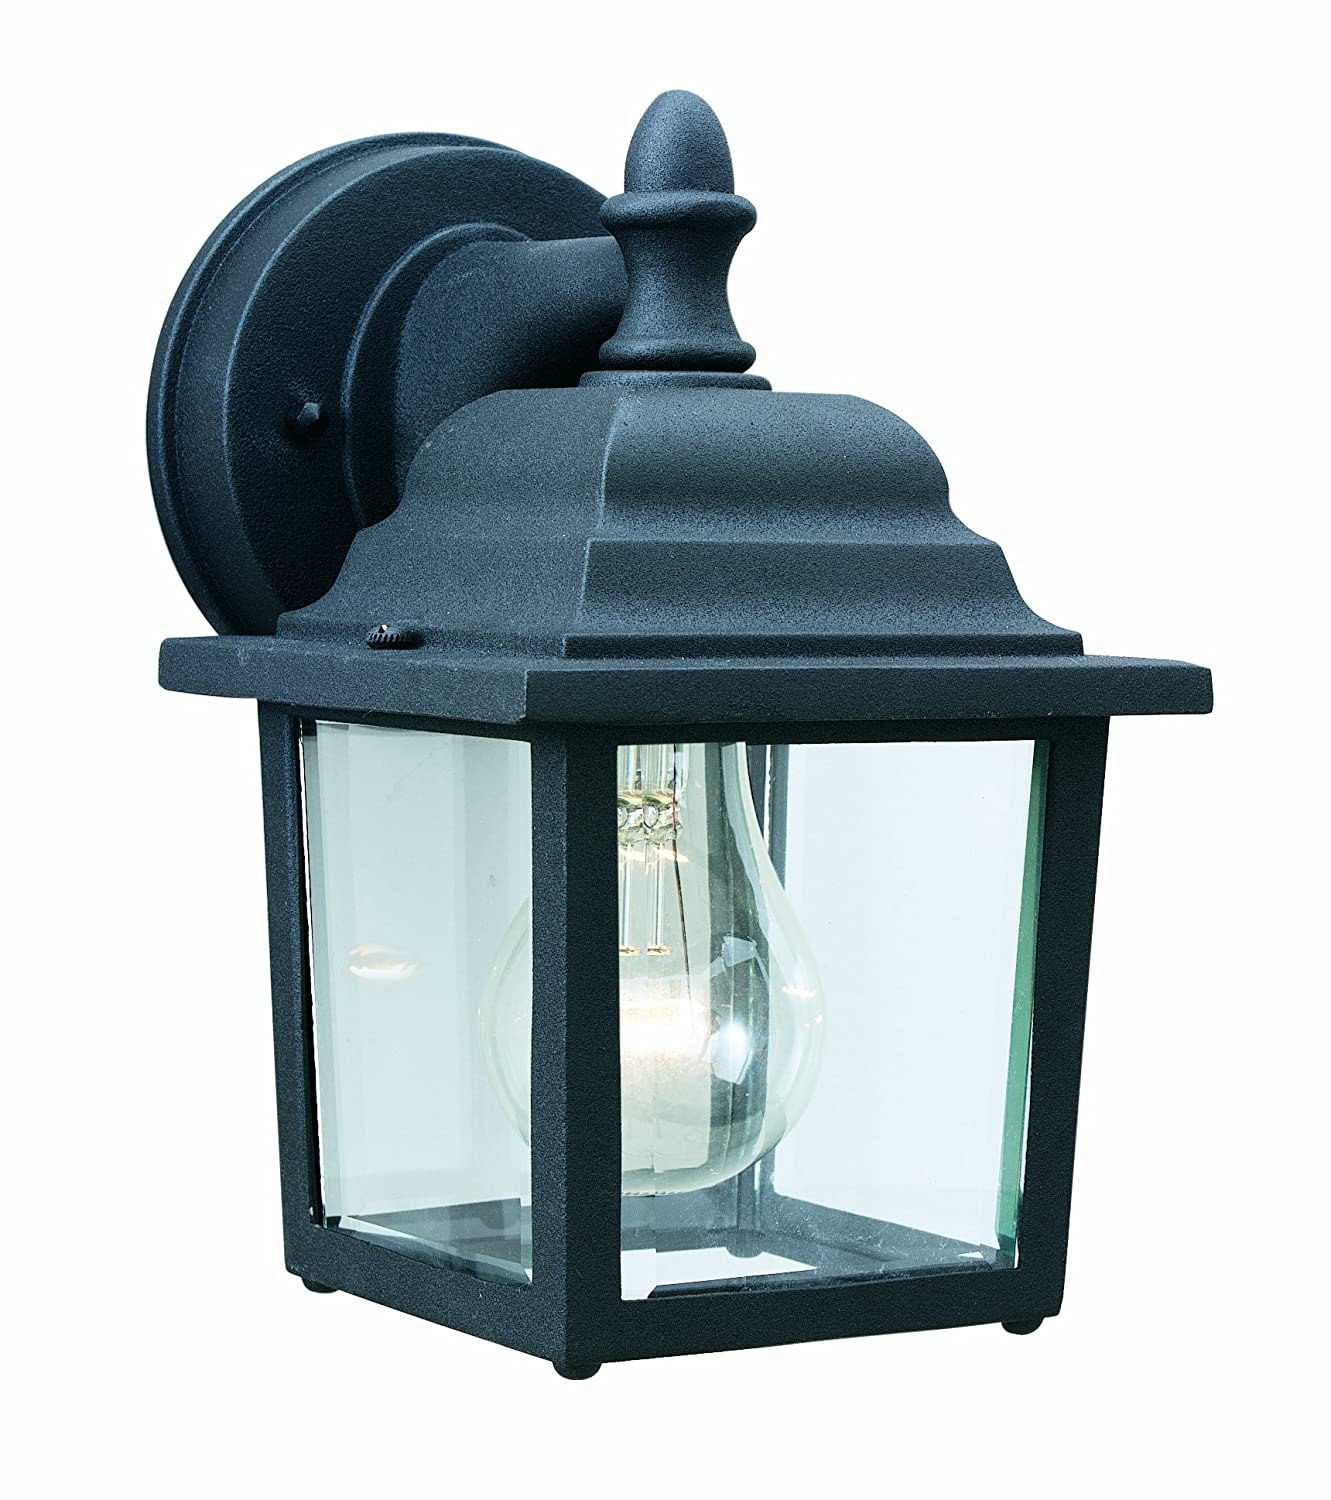 Thomas lighting sl9422 7 hawthorne one light outdoor wall lantern thomas lighting sl9422 7 hawthorne one light outdoor wall lantern matte black wall porch lights amazon aloadofball Choice Image